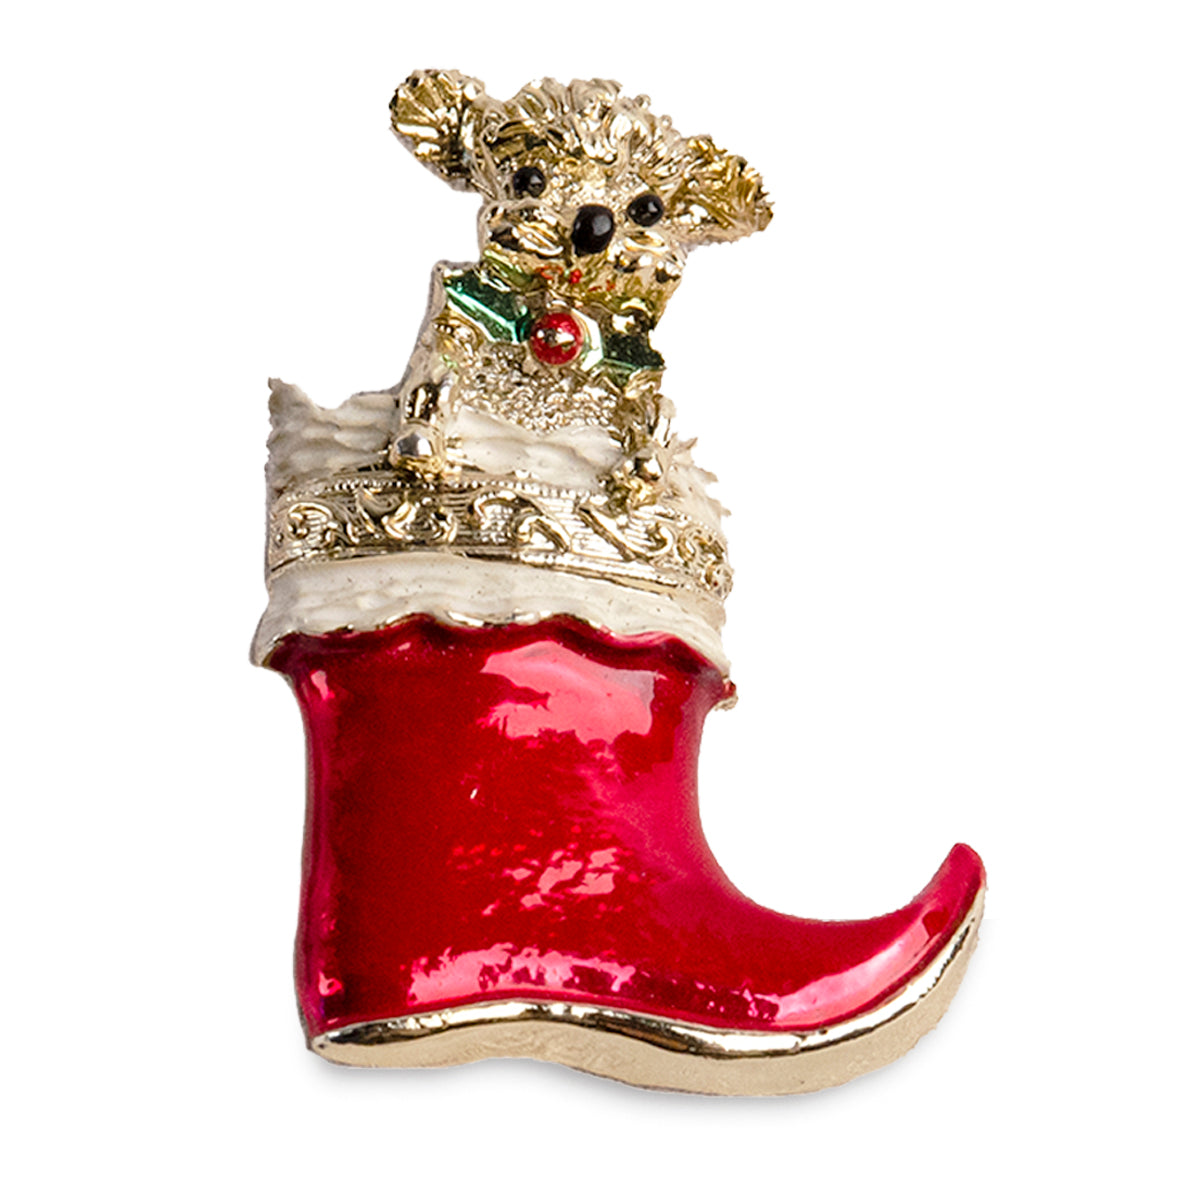 Puppy in Santa Boot Christmas Pin by Gerry's